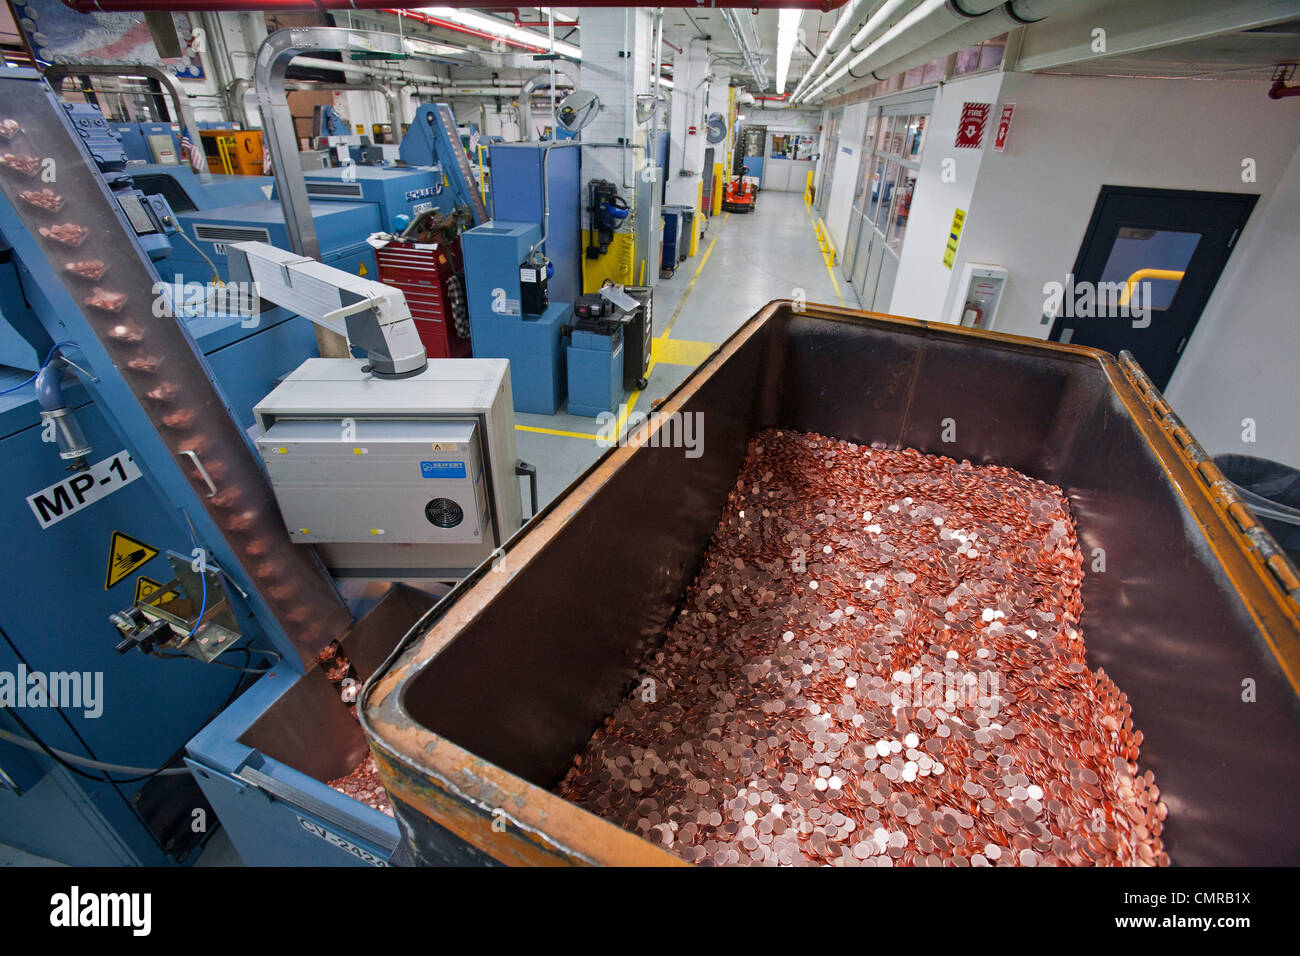 Denver, Colorado - Production of coins at the United States Mint. A bin holds blank shapes that will be turned into - Stock Image